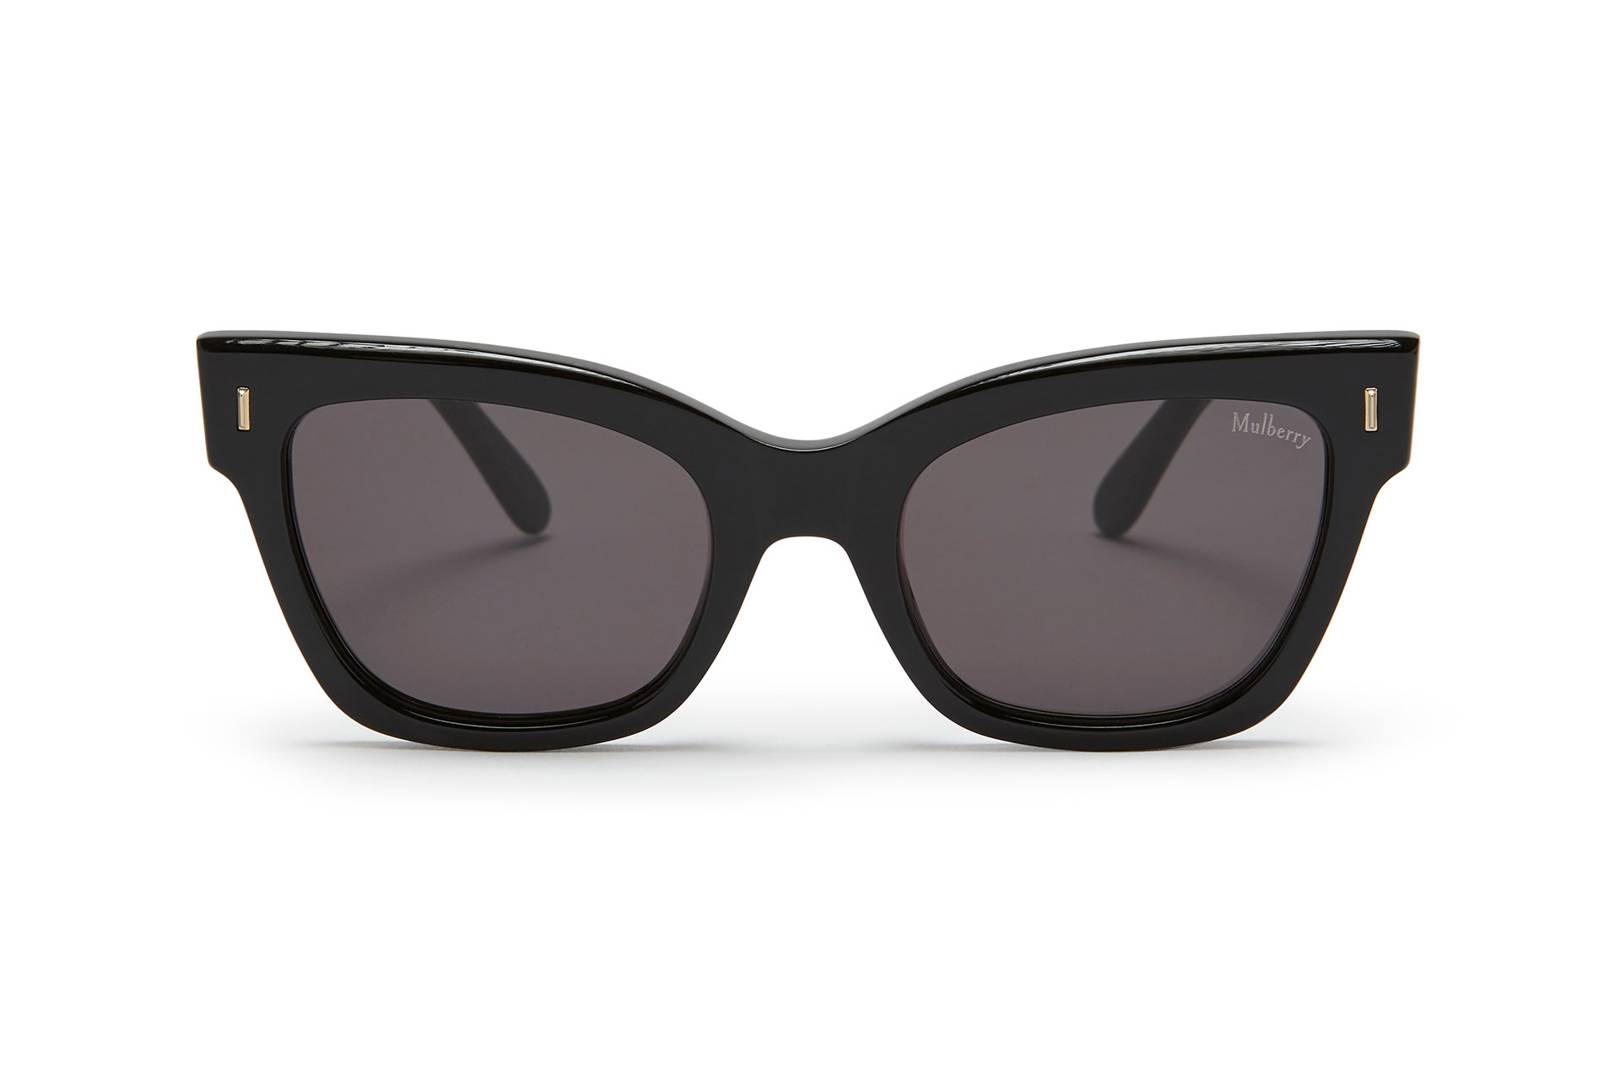 27d632774cdf Mulberry Launches Sunglasses Inspired By John Lennon And Kate Moss |  British Vogue